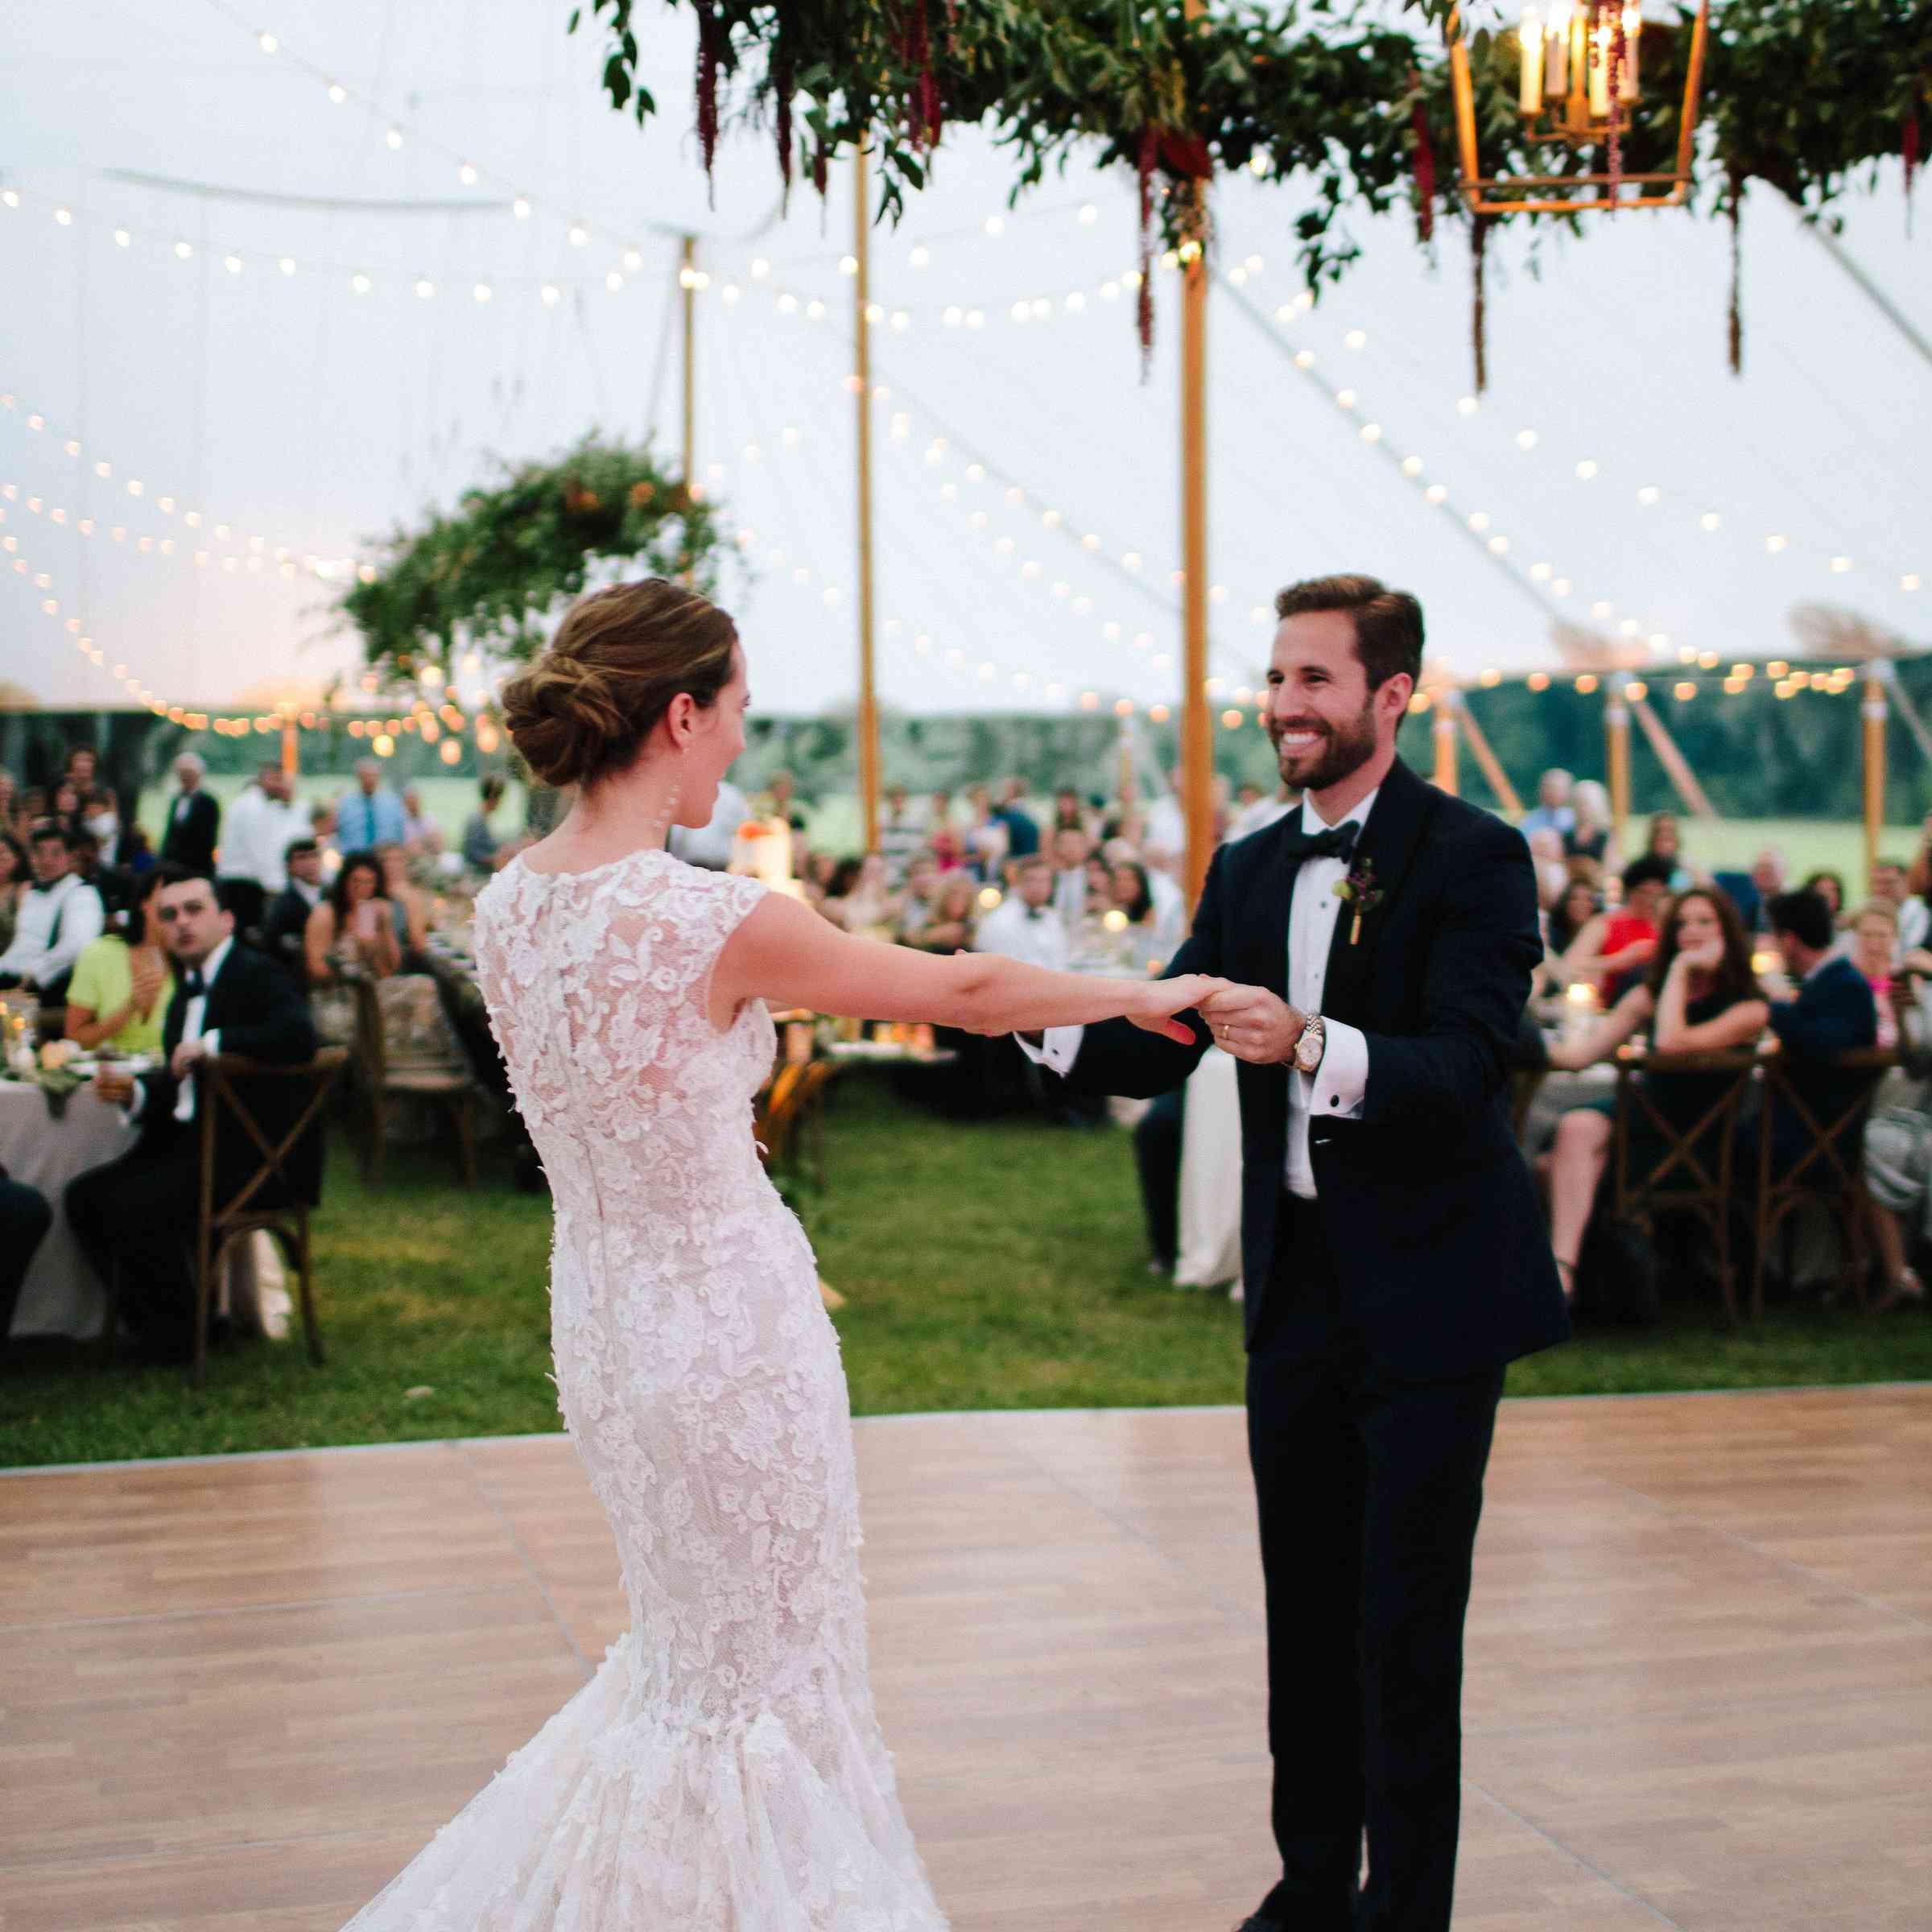 <p>Bride and groom during first dance</p><br><br>